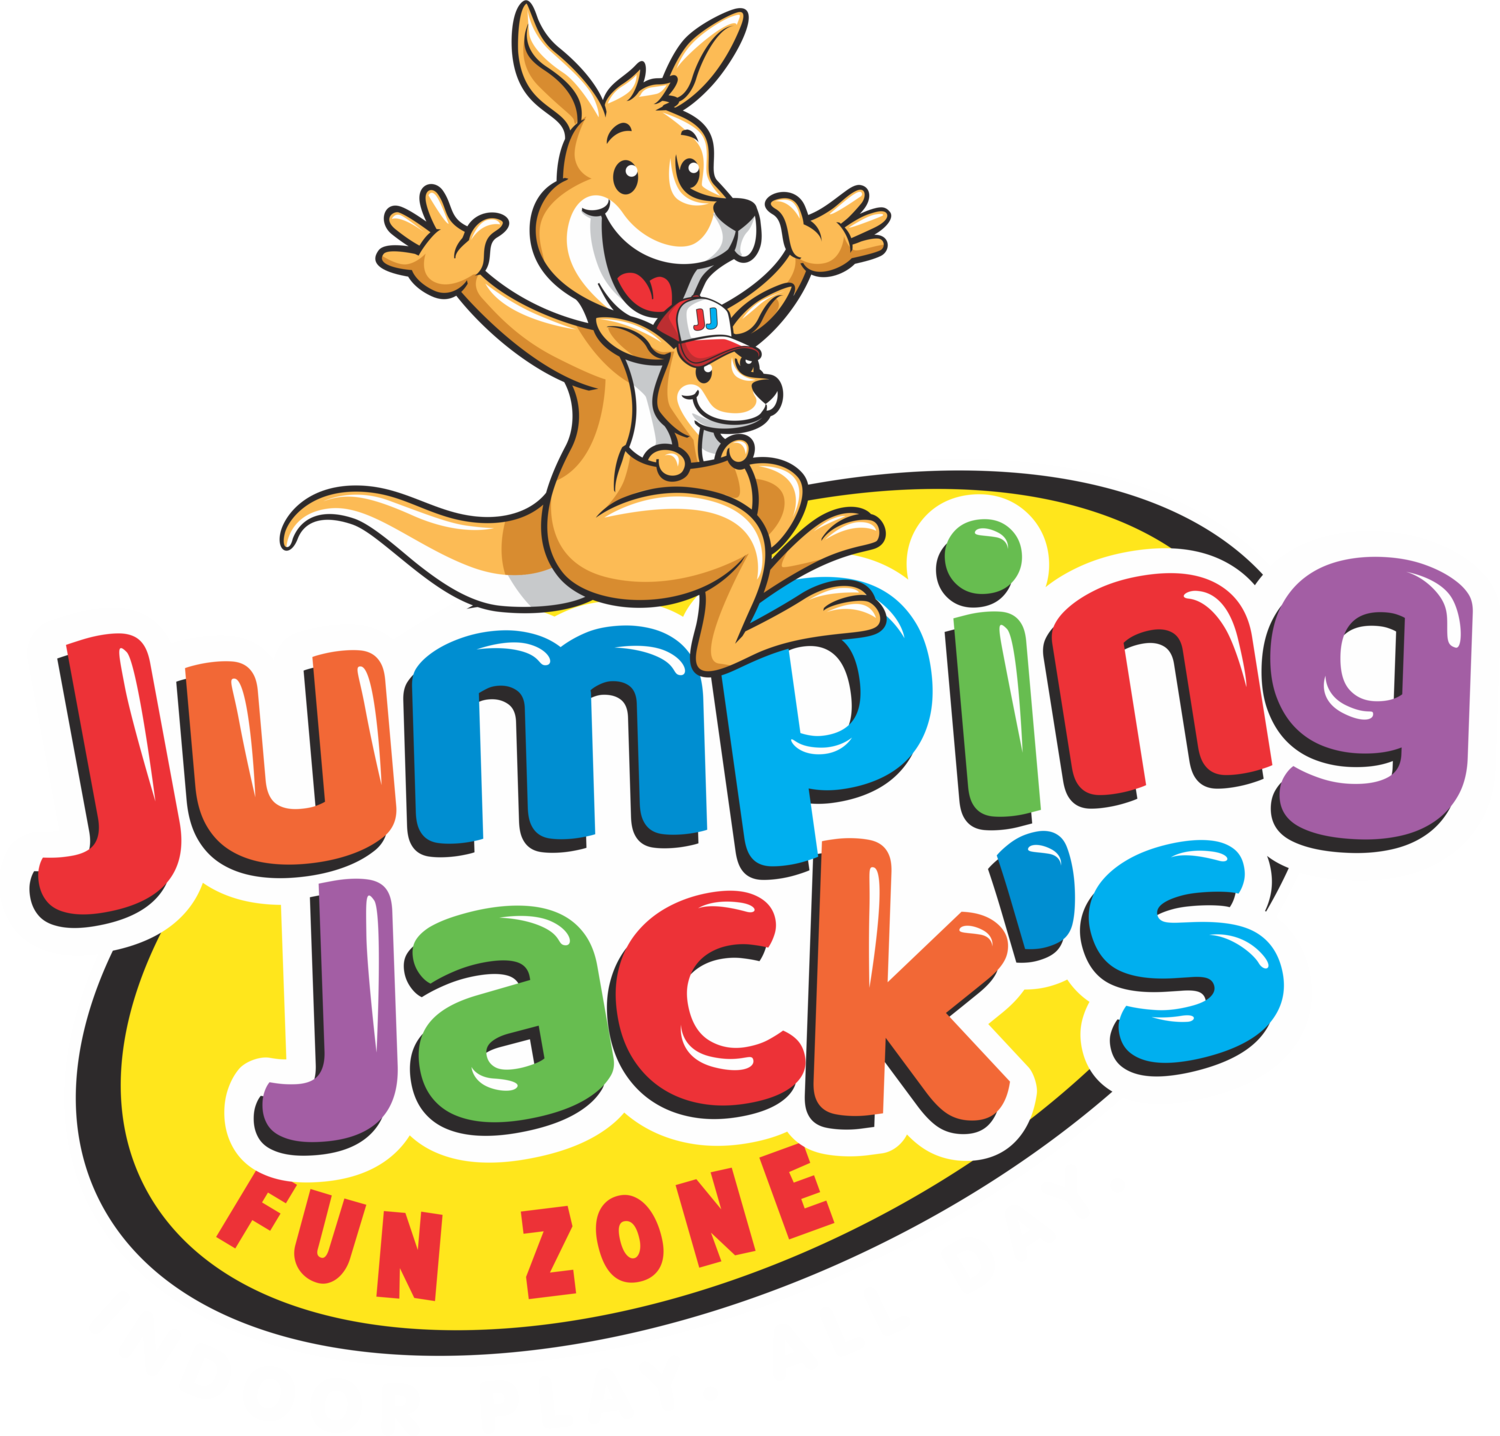 Everybody's Jumping at Jack's!